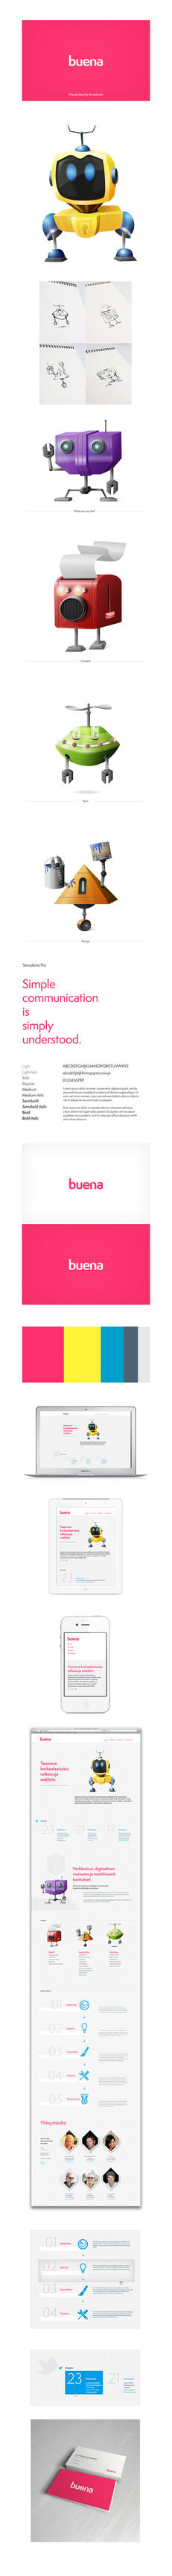 Buena - Visual Identity and Web Design by ouwEnz